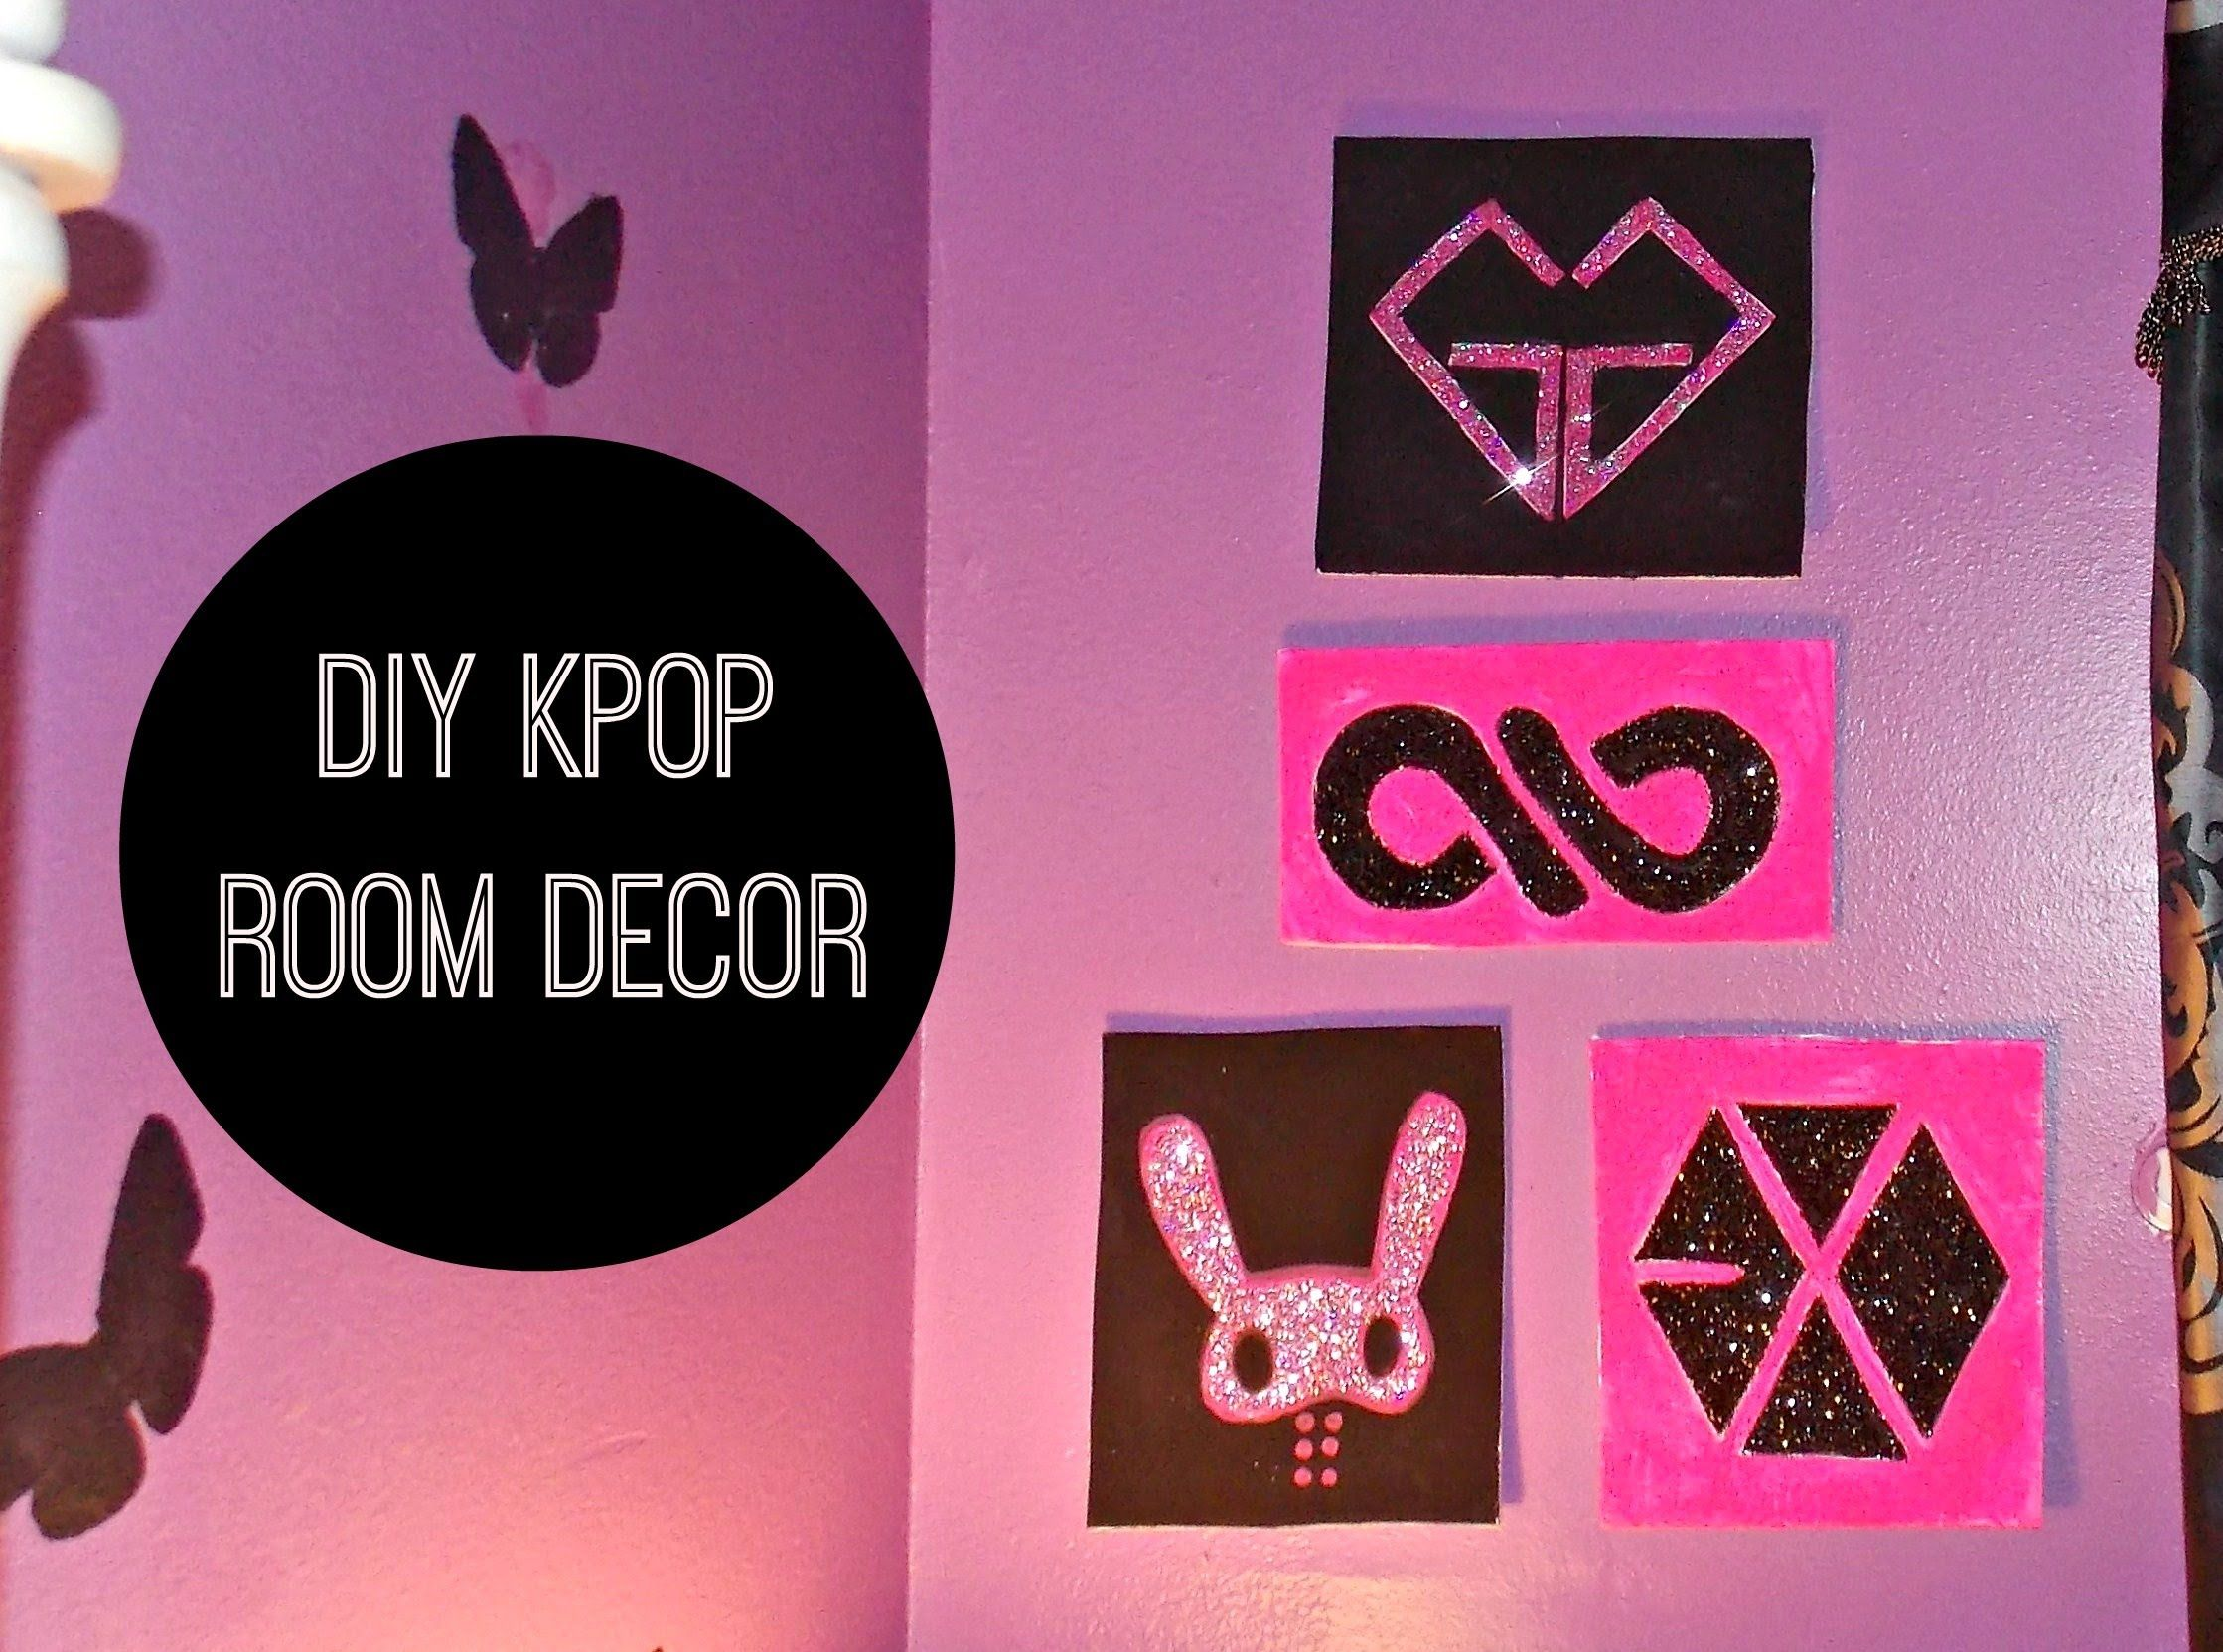 DIY K-POP Room Decor Wall Art | kpop crafts and ideas ...